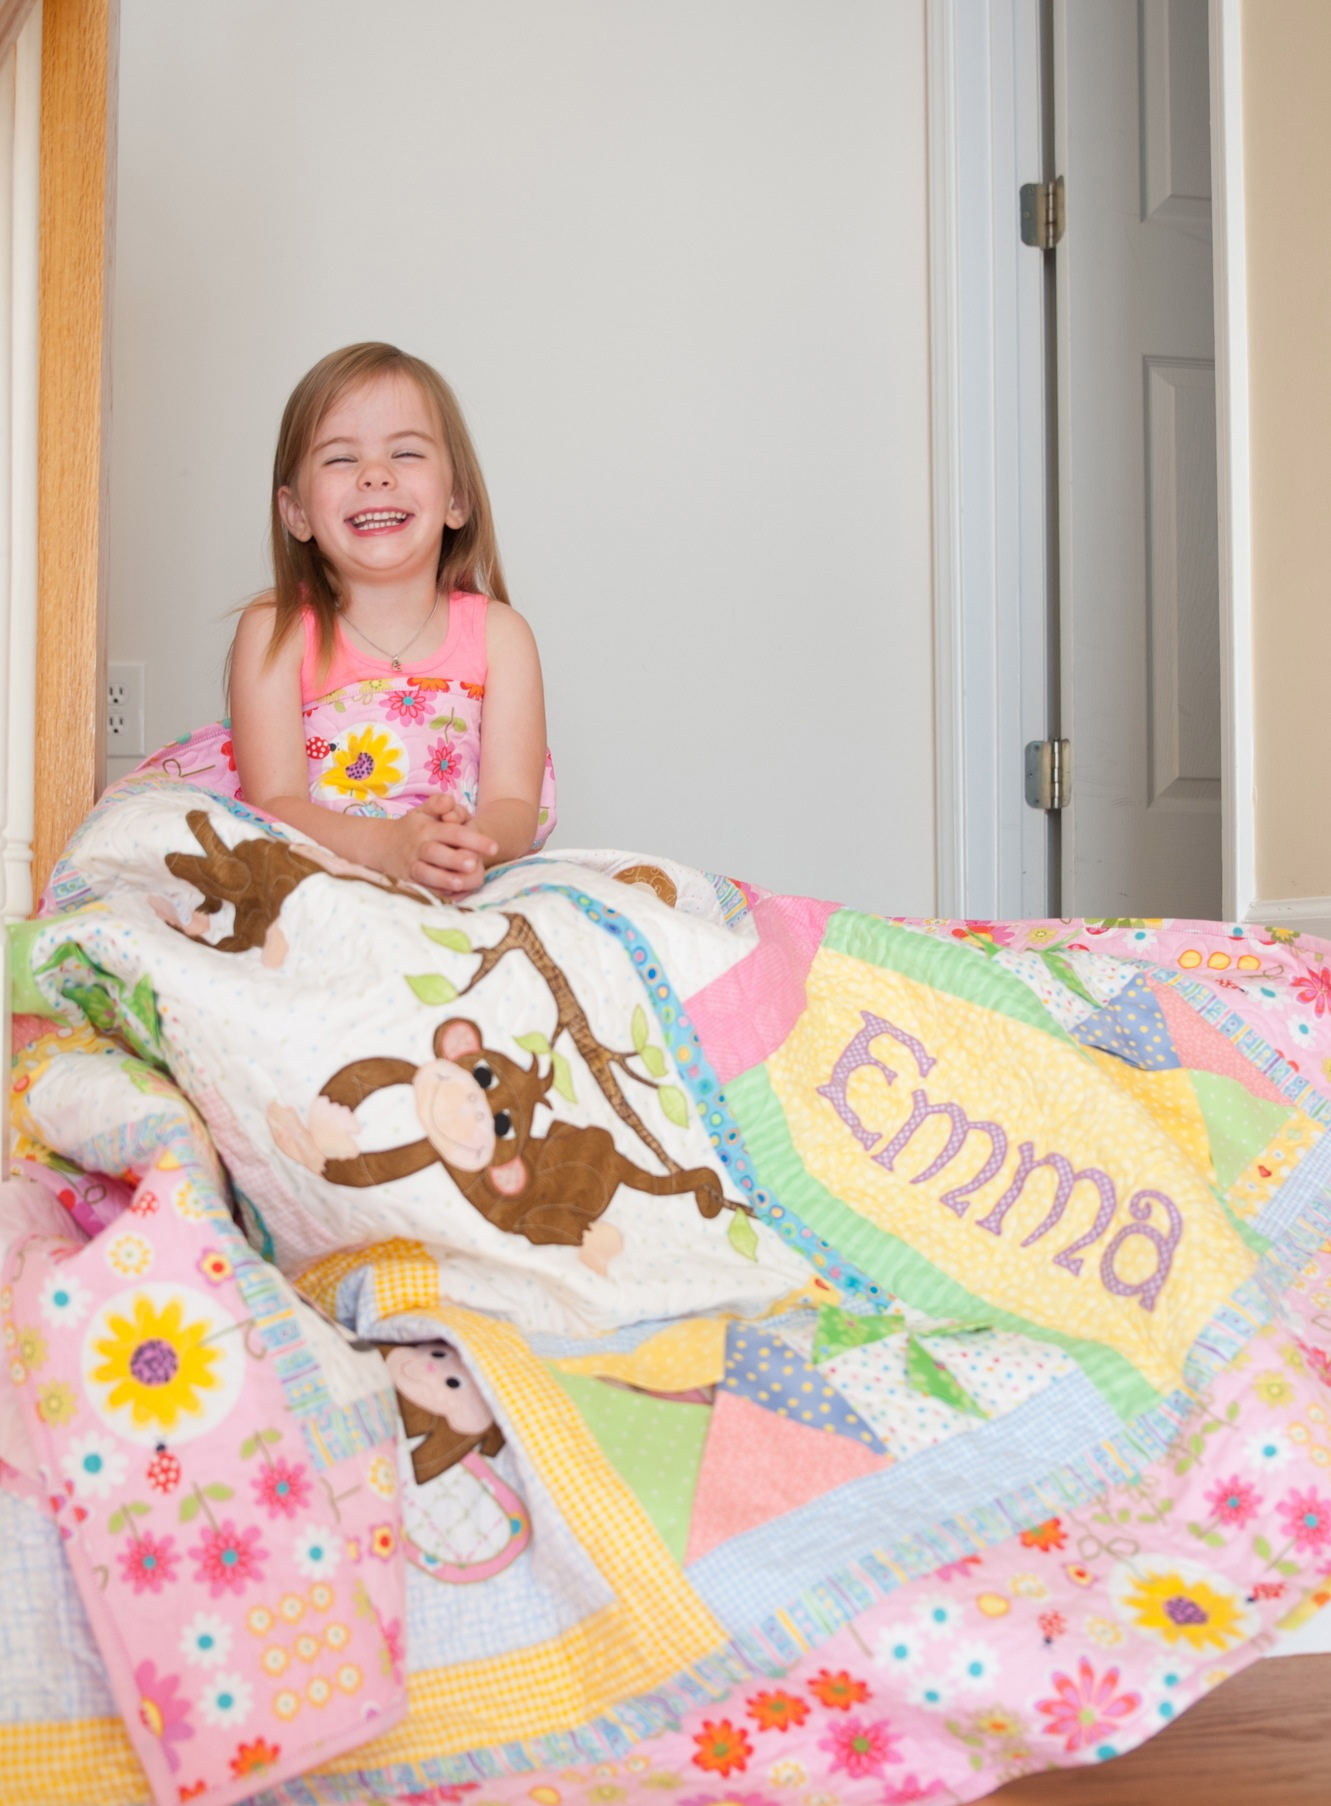 Emma and her quilt